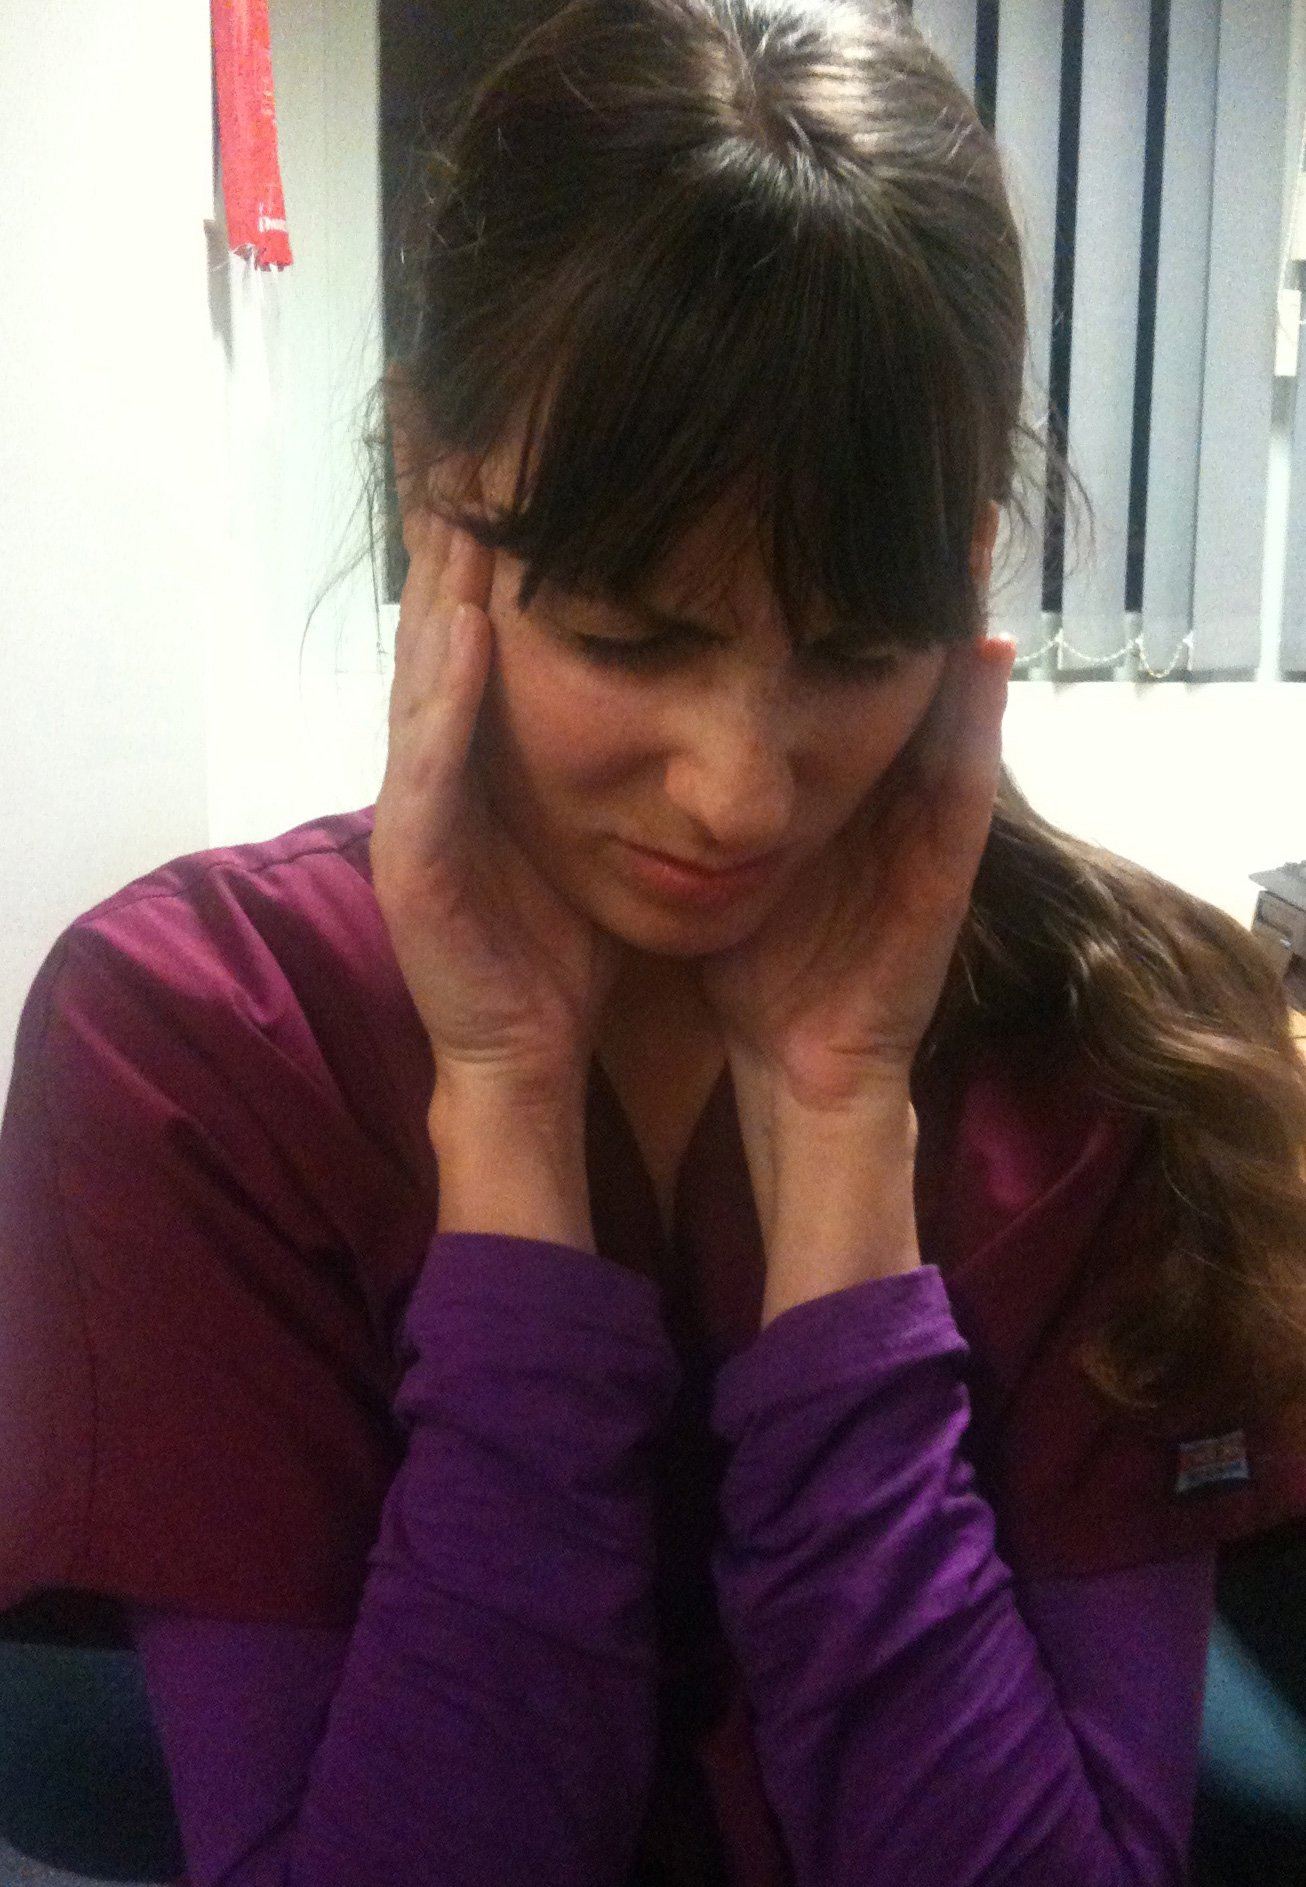 Tension Headaches and Post Concussion Syndrome